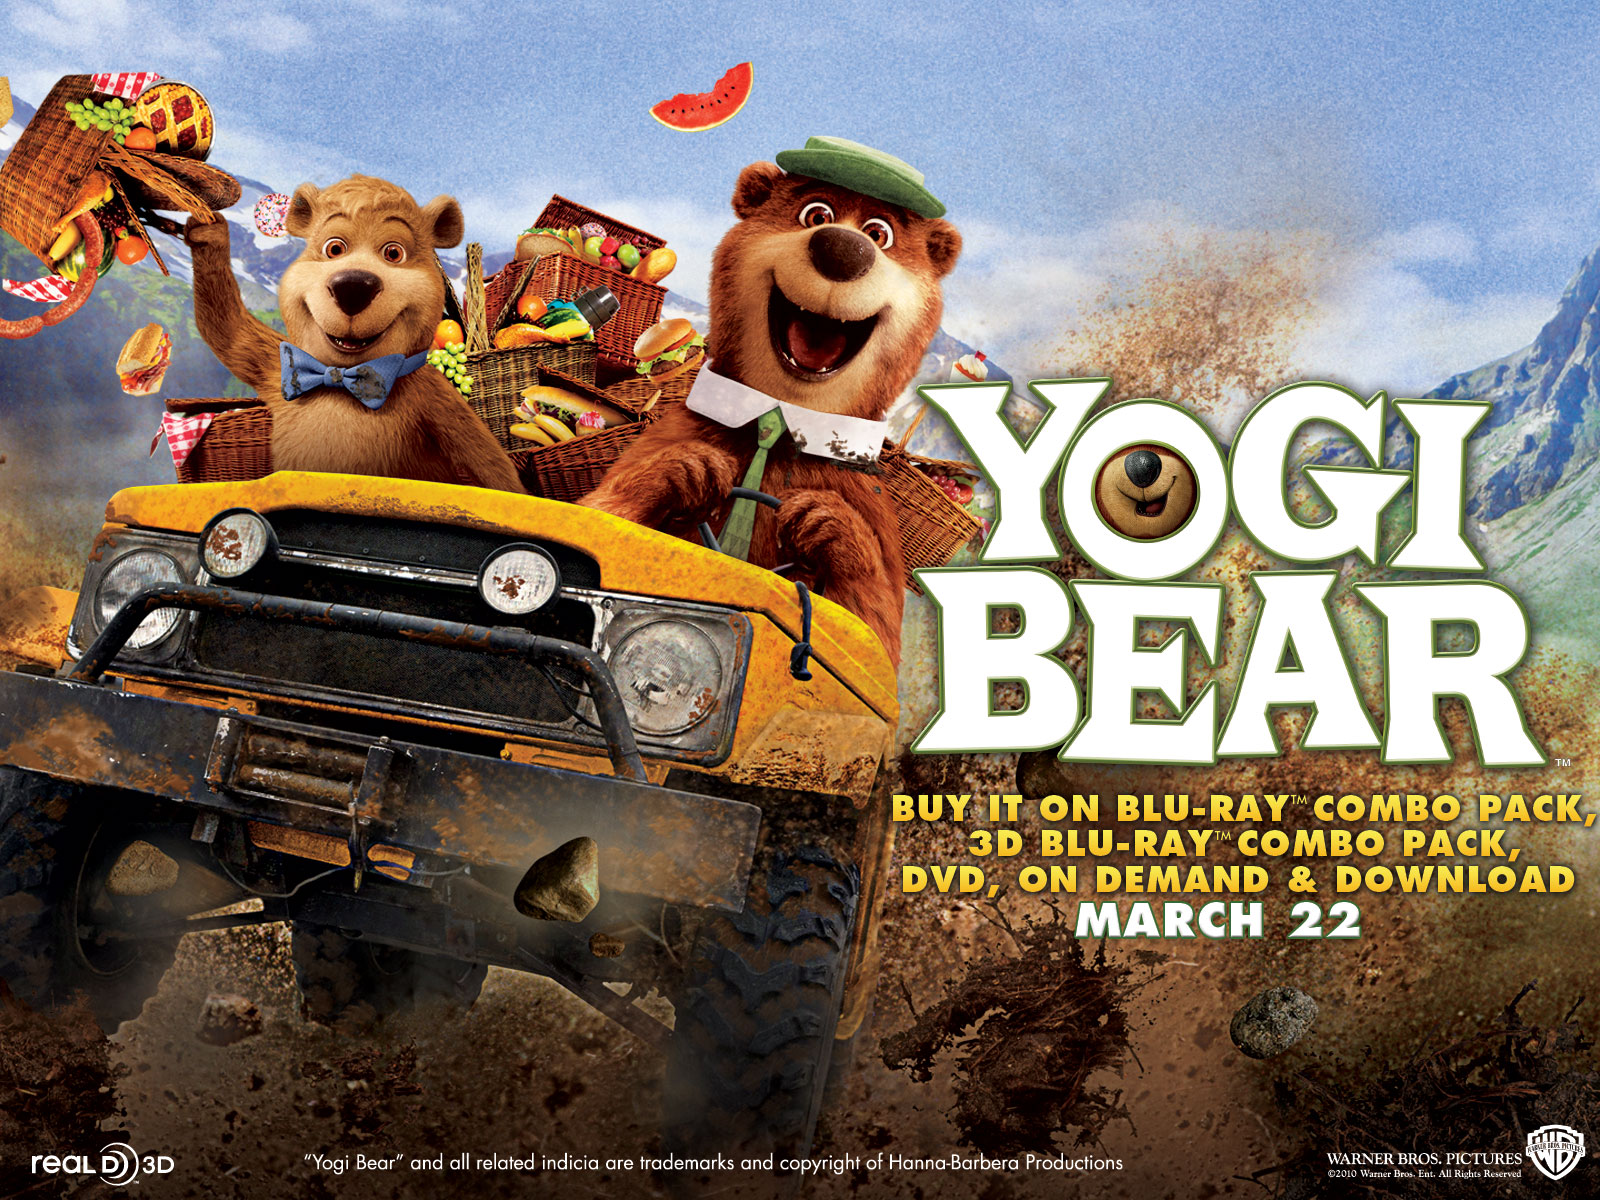 Yogi Bear Movie Poster Controversy EZ PC Wallpapers: Yogi...